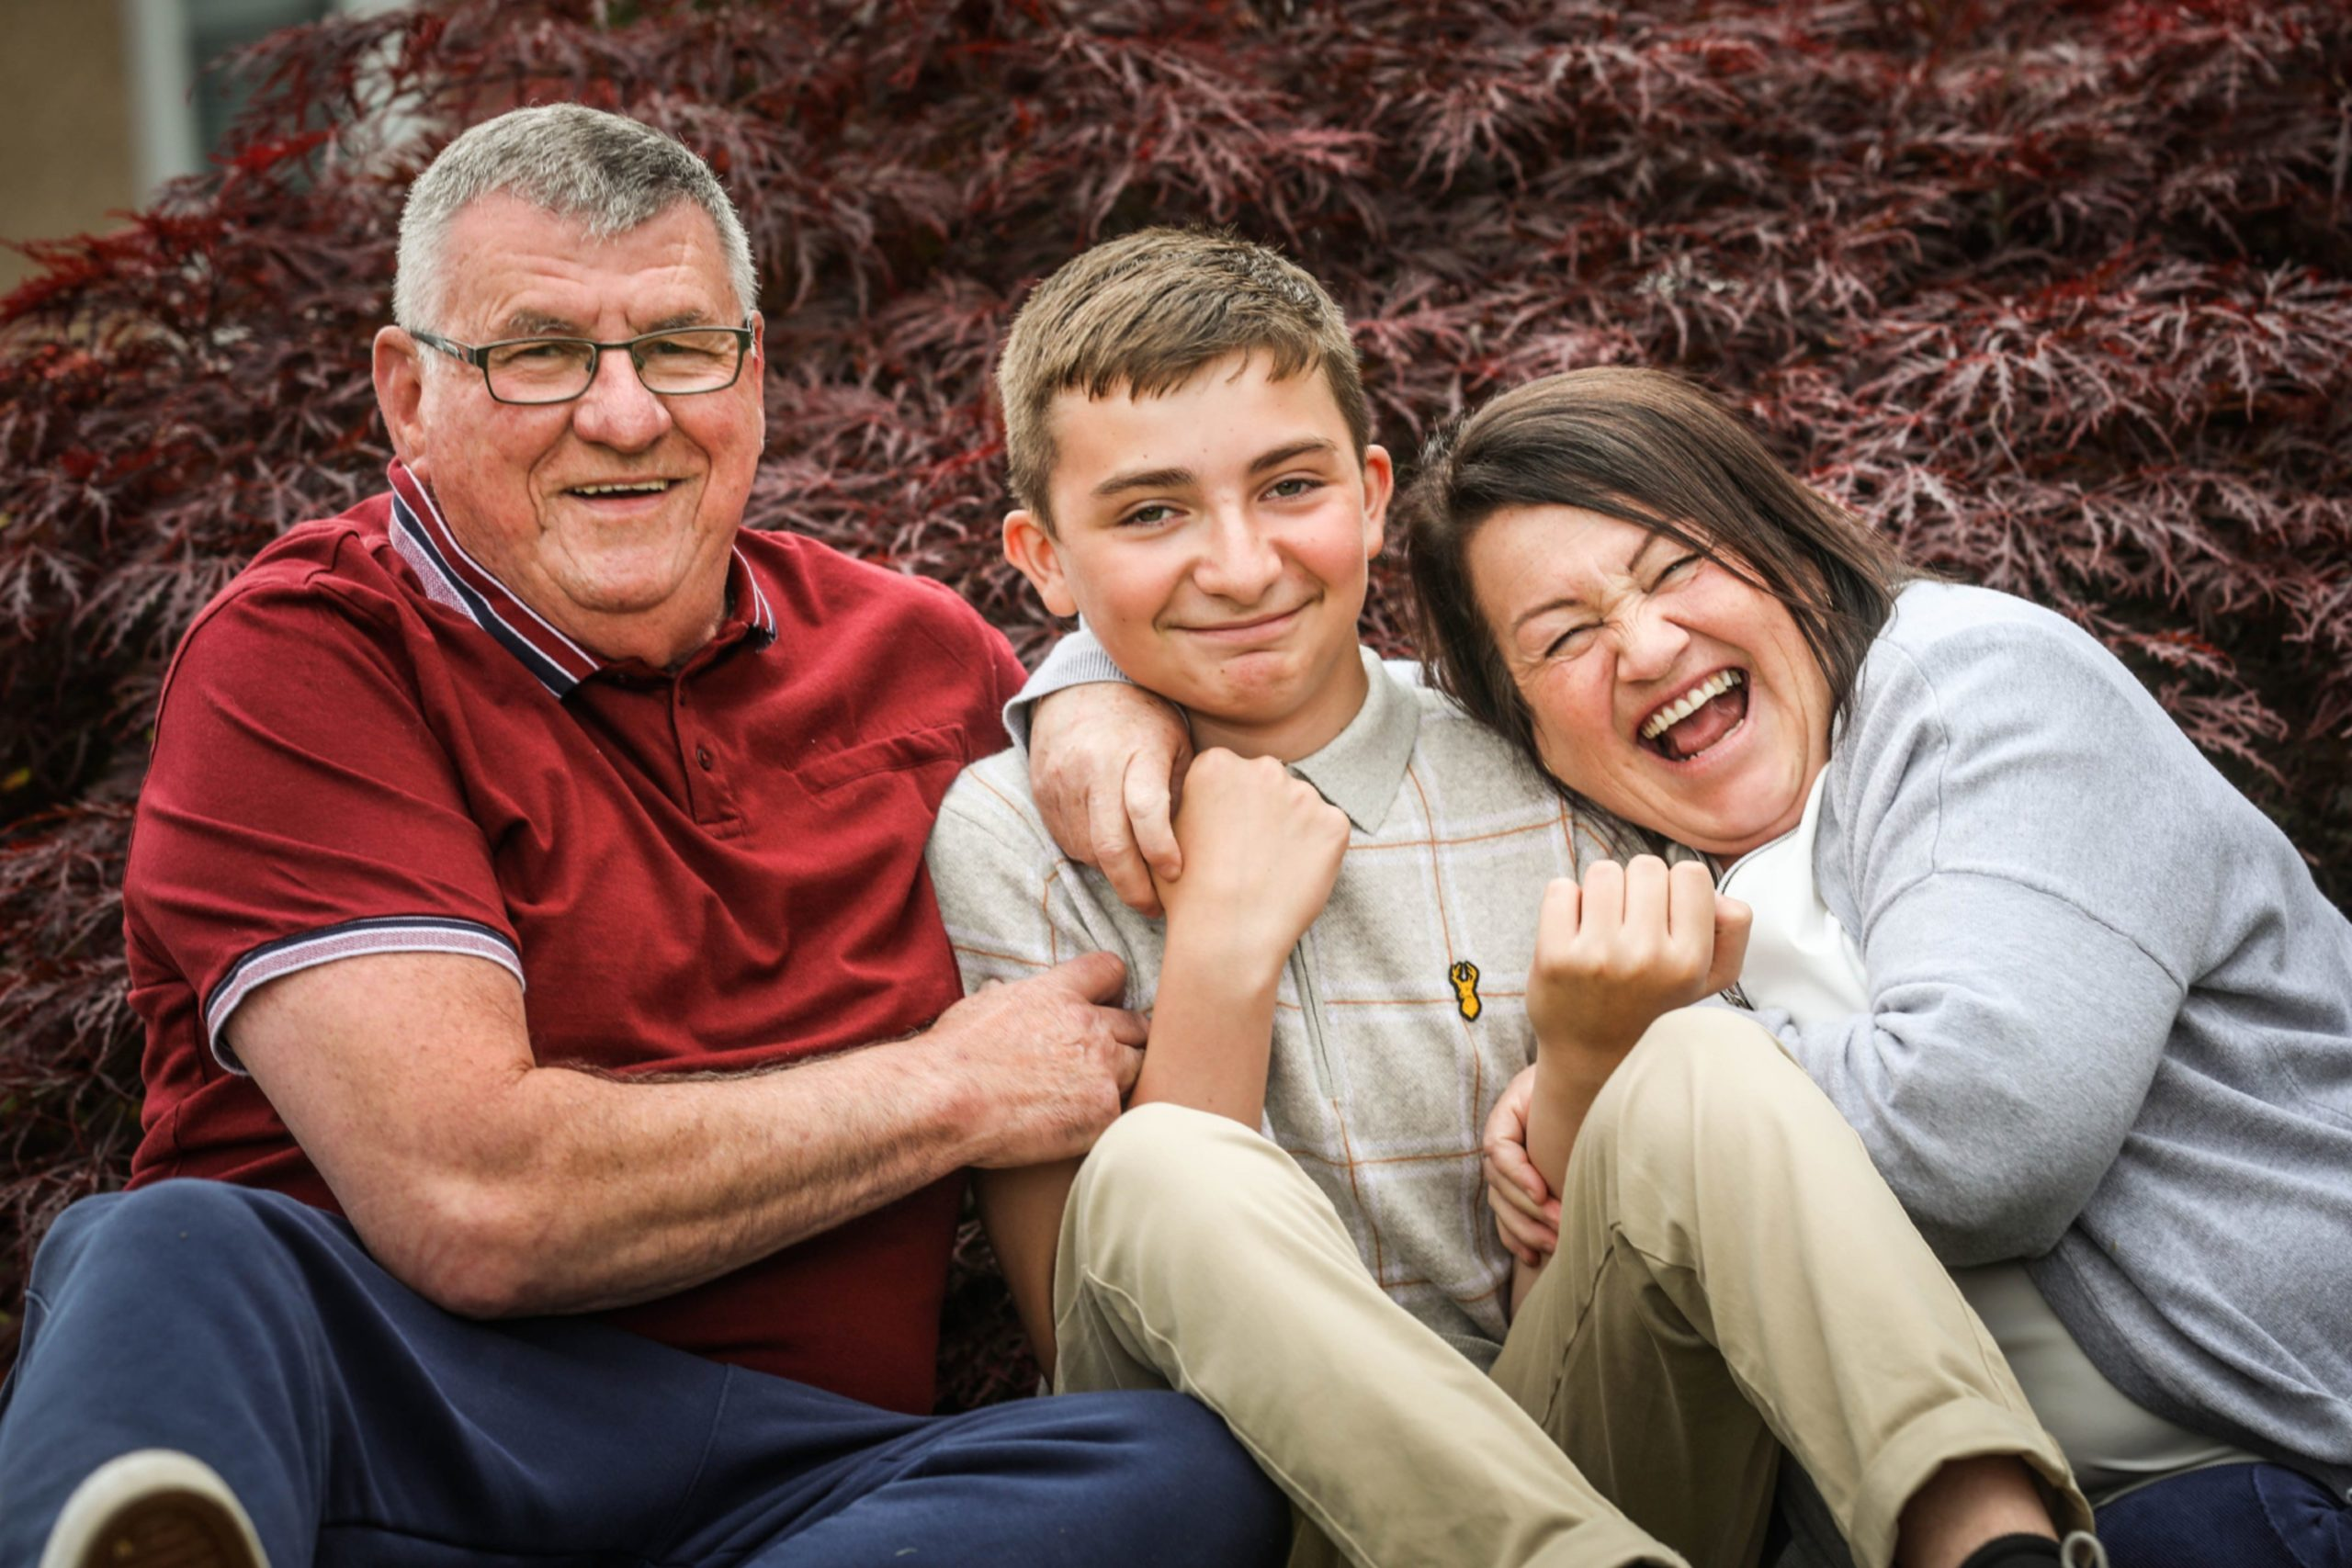 A thirteen year-old boy having fun with his foster parents